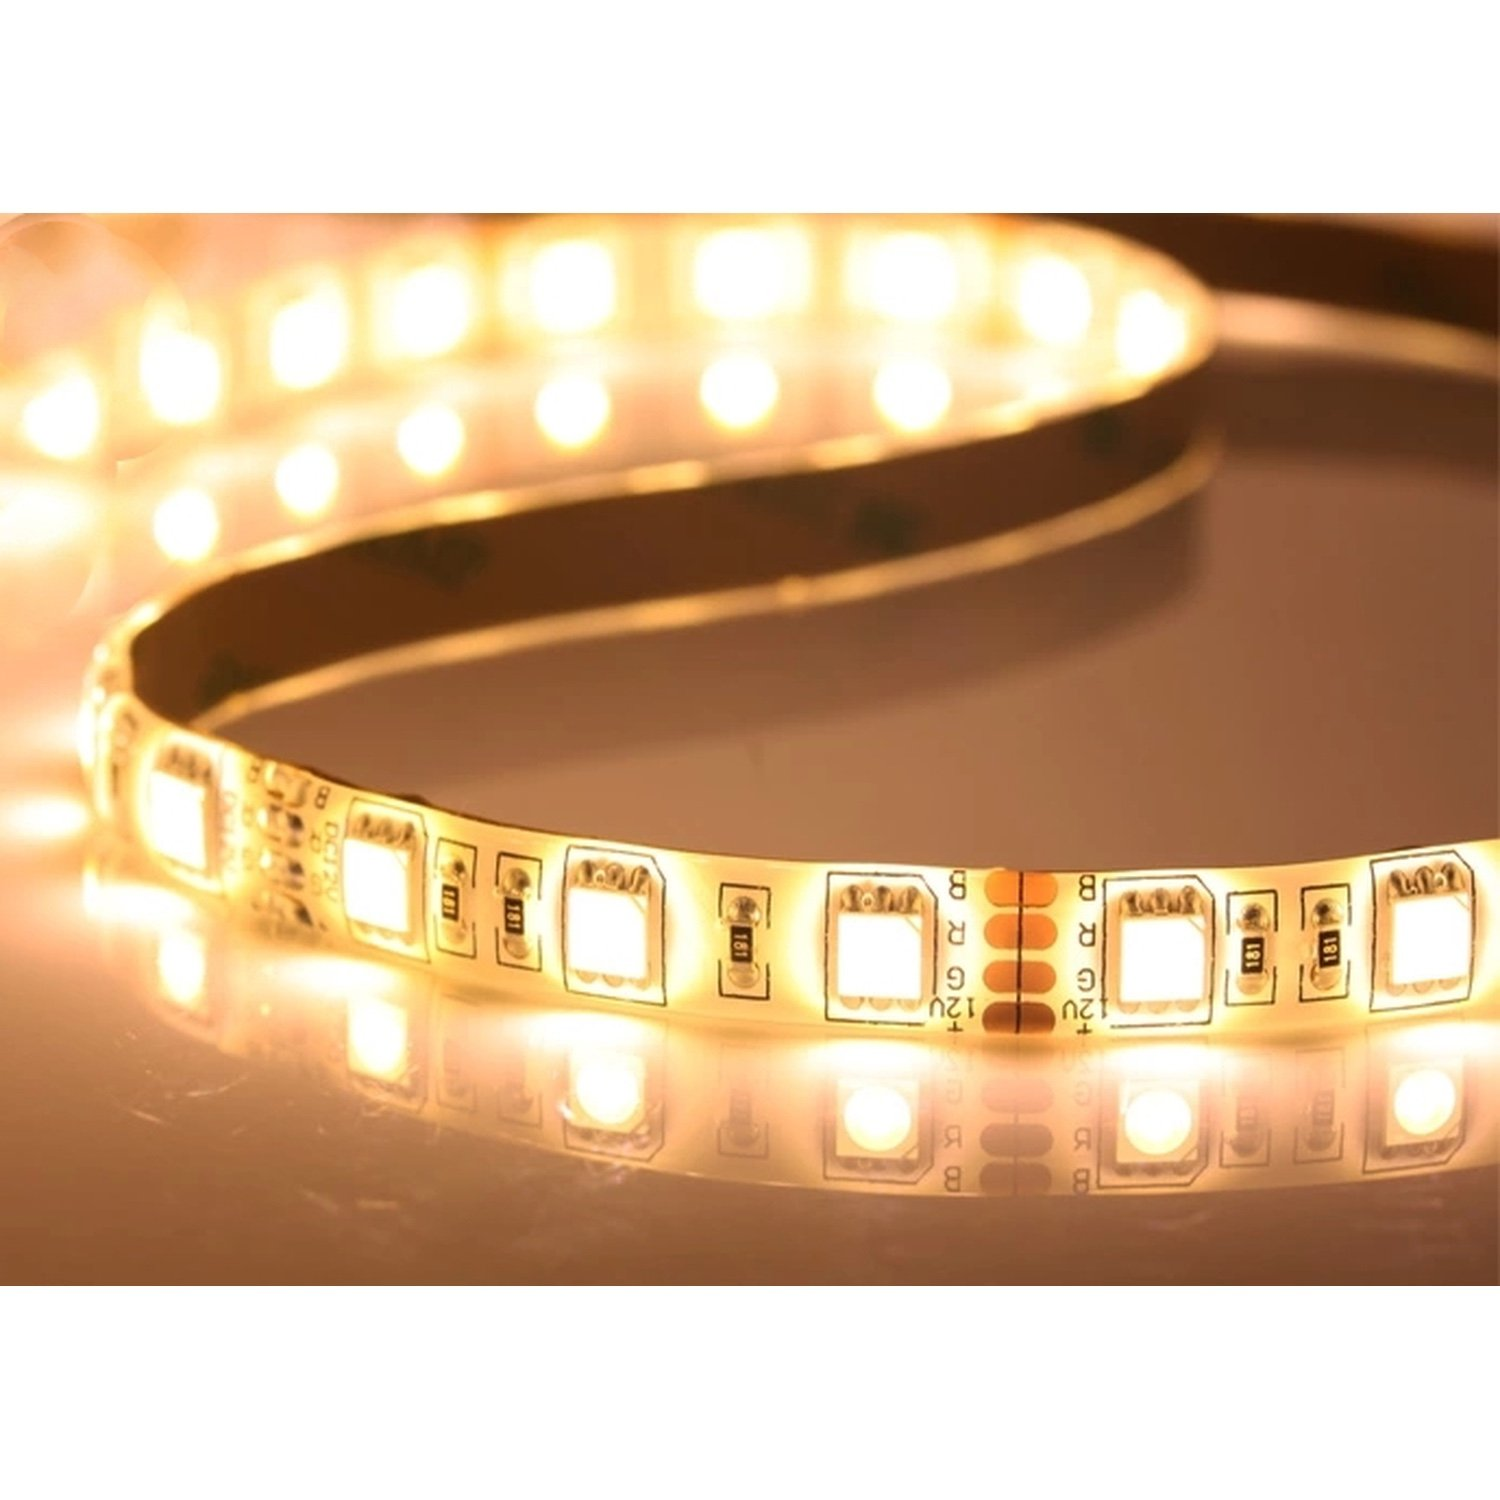 5 poke 60-LED 5050 SMD Waterproof White Bendable Light Strip Power Saving 3000k color kwb 5v usb led strip light 5050 smd waterproof with rgb controller